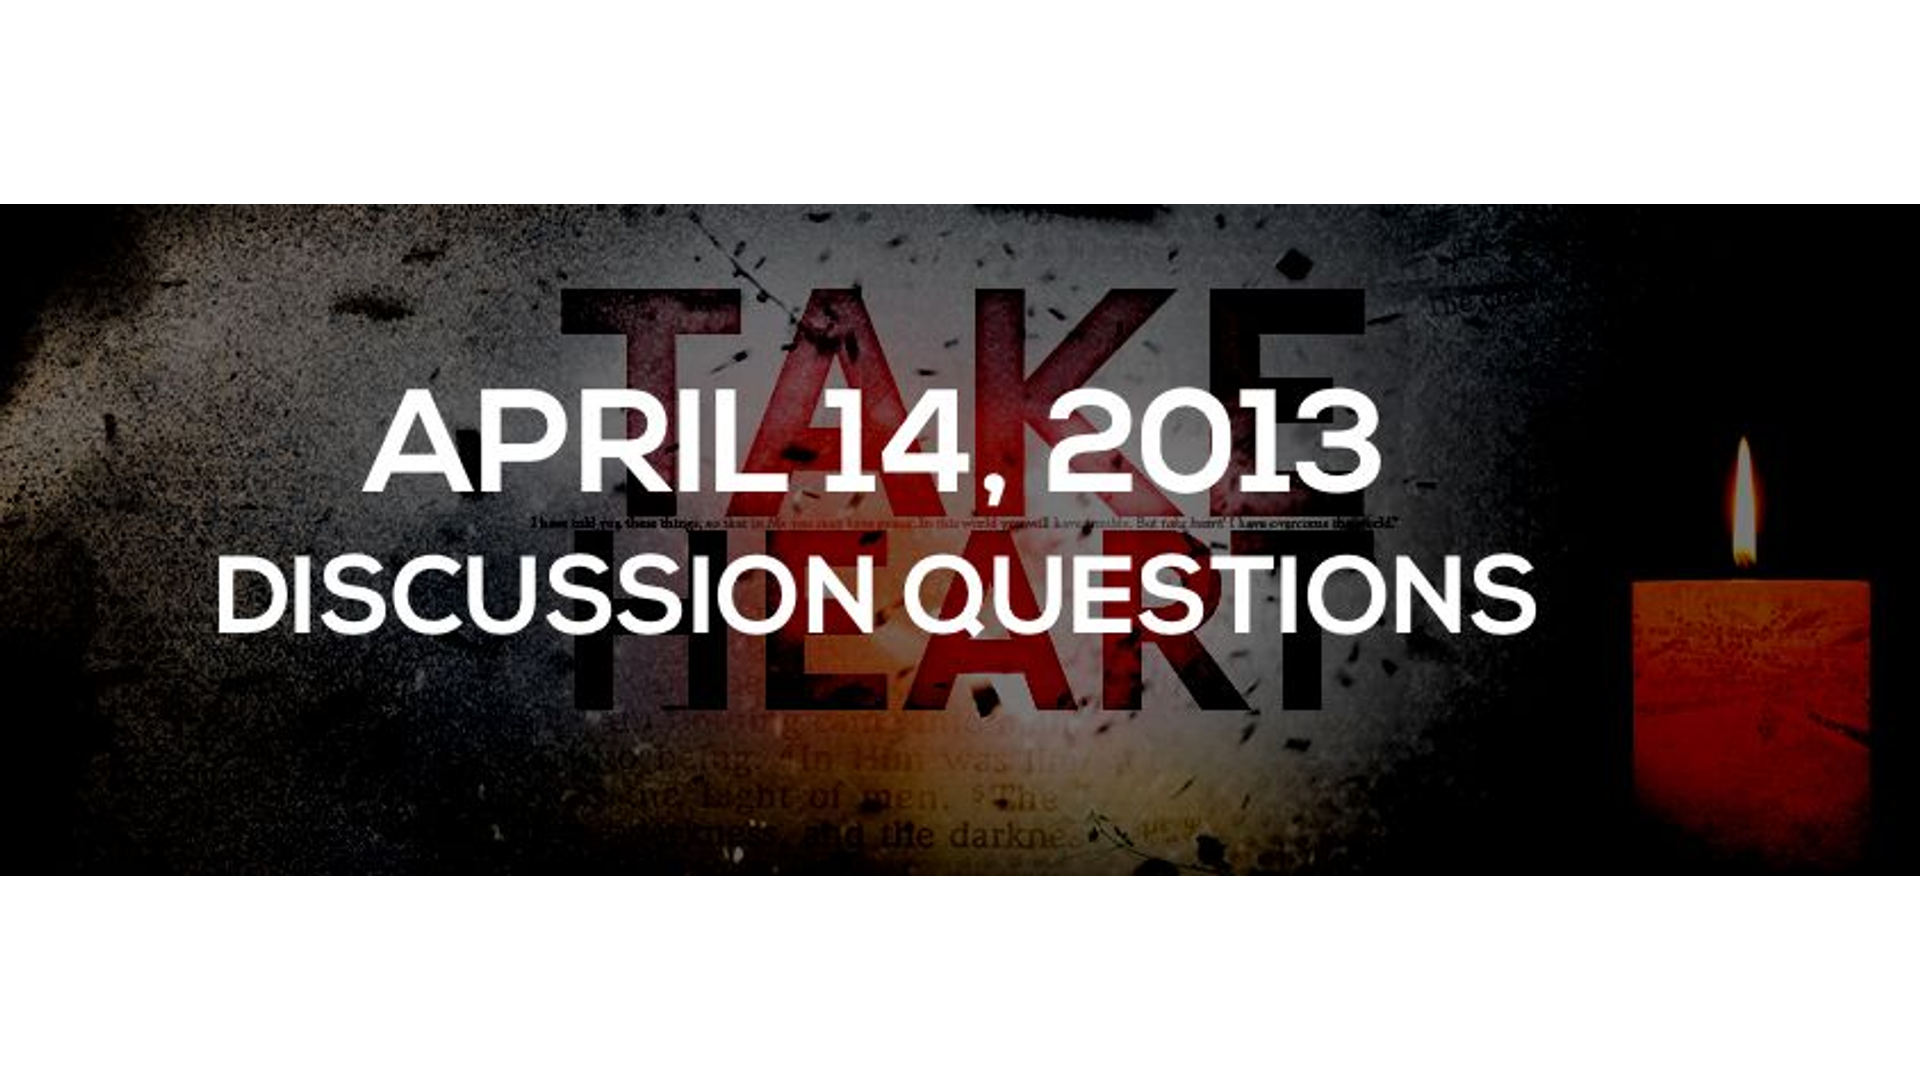 Discussion Questions: April 14, 2013 Hero Image